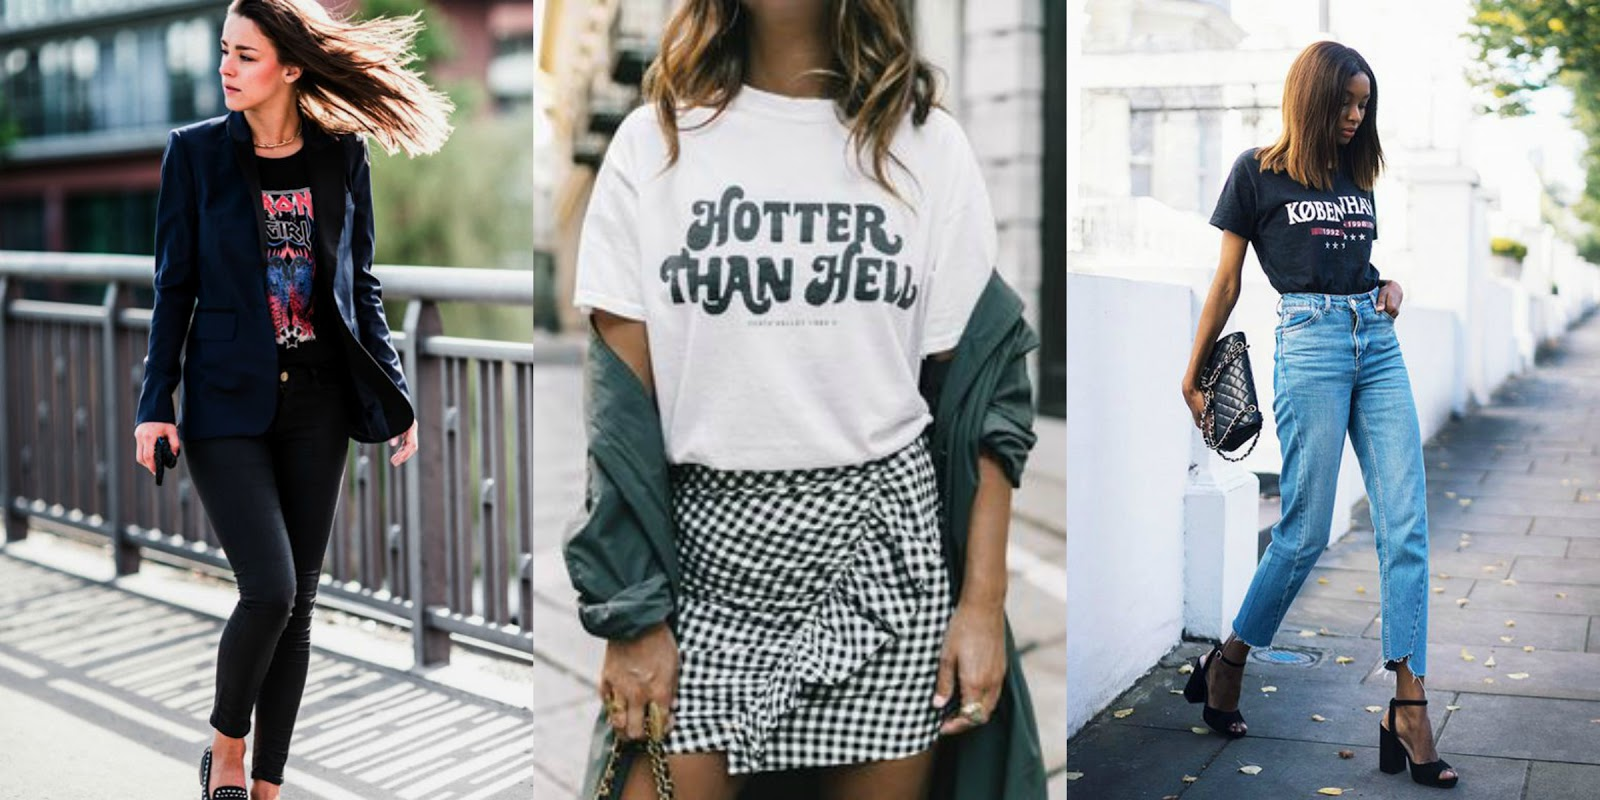 How To WearT-Shirts And Still Look Put Together